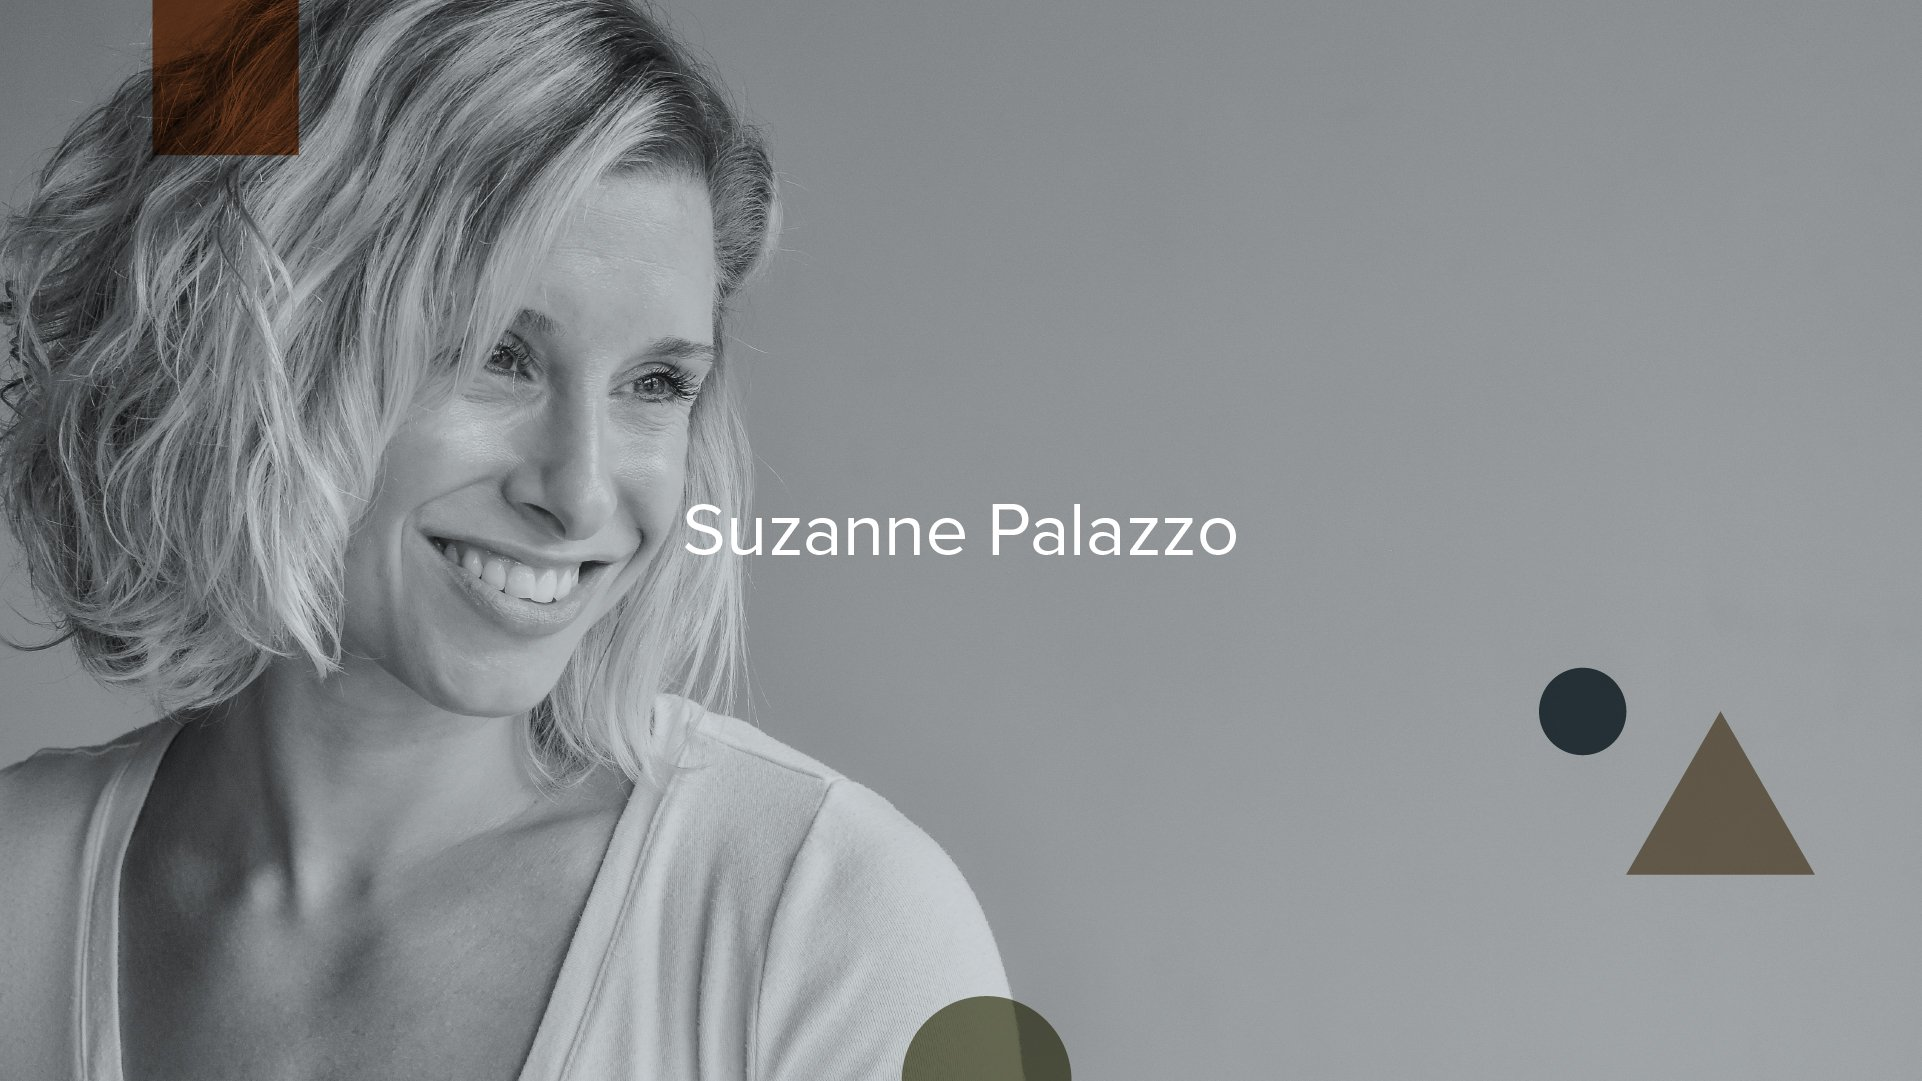 ep 17 - Suzanne Palazzo - Upper Deck Fitness - Entrepreneur Story